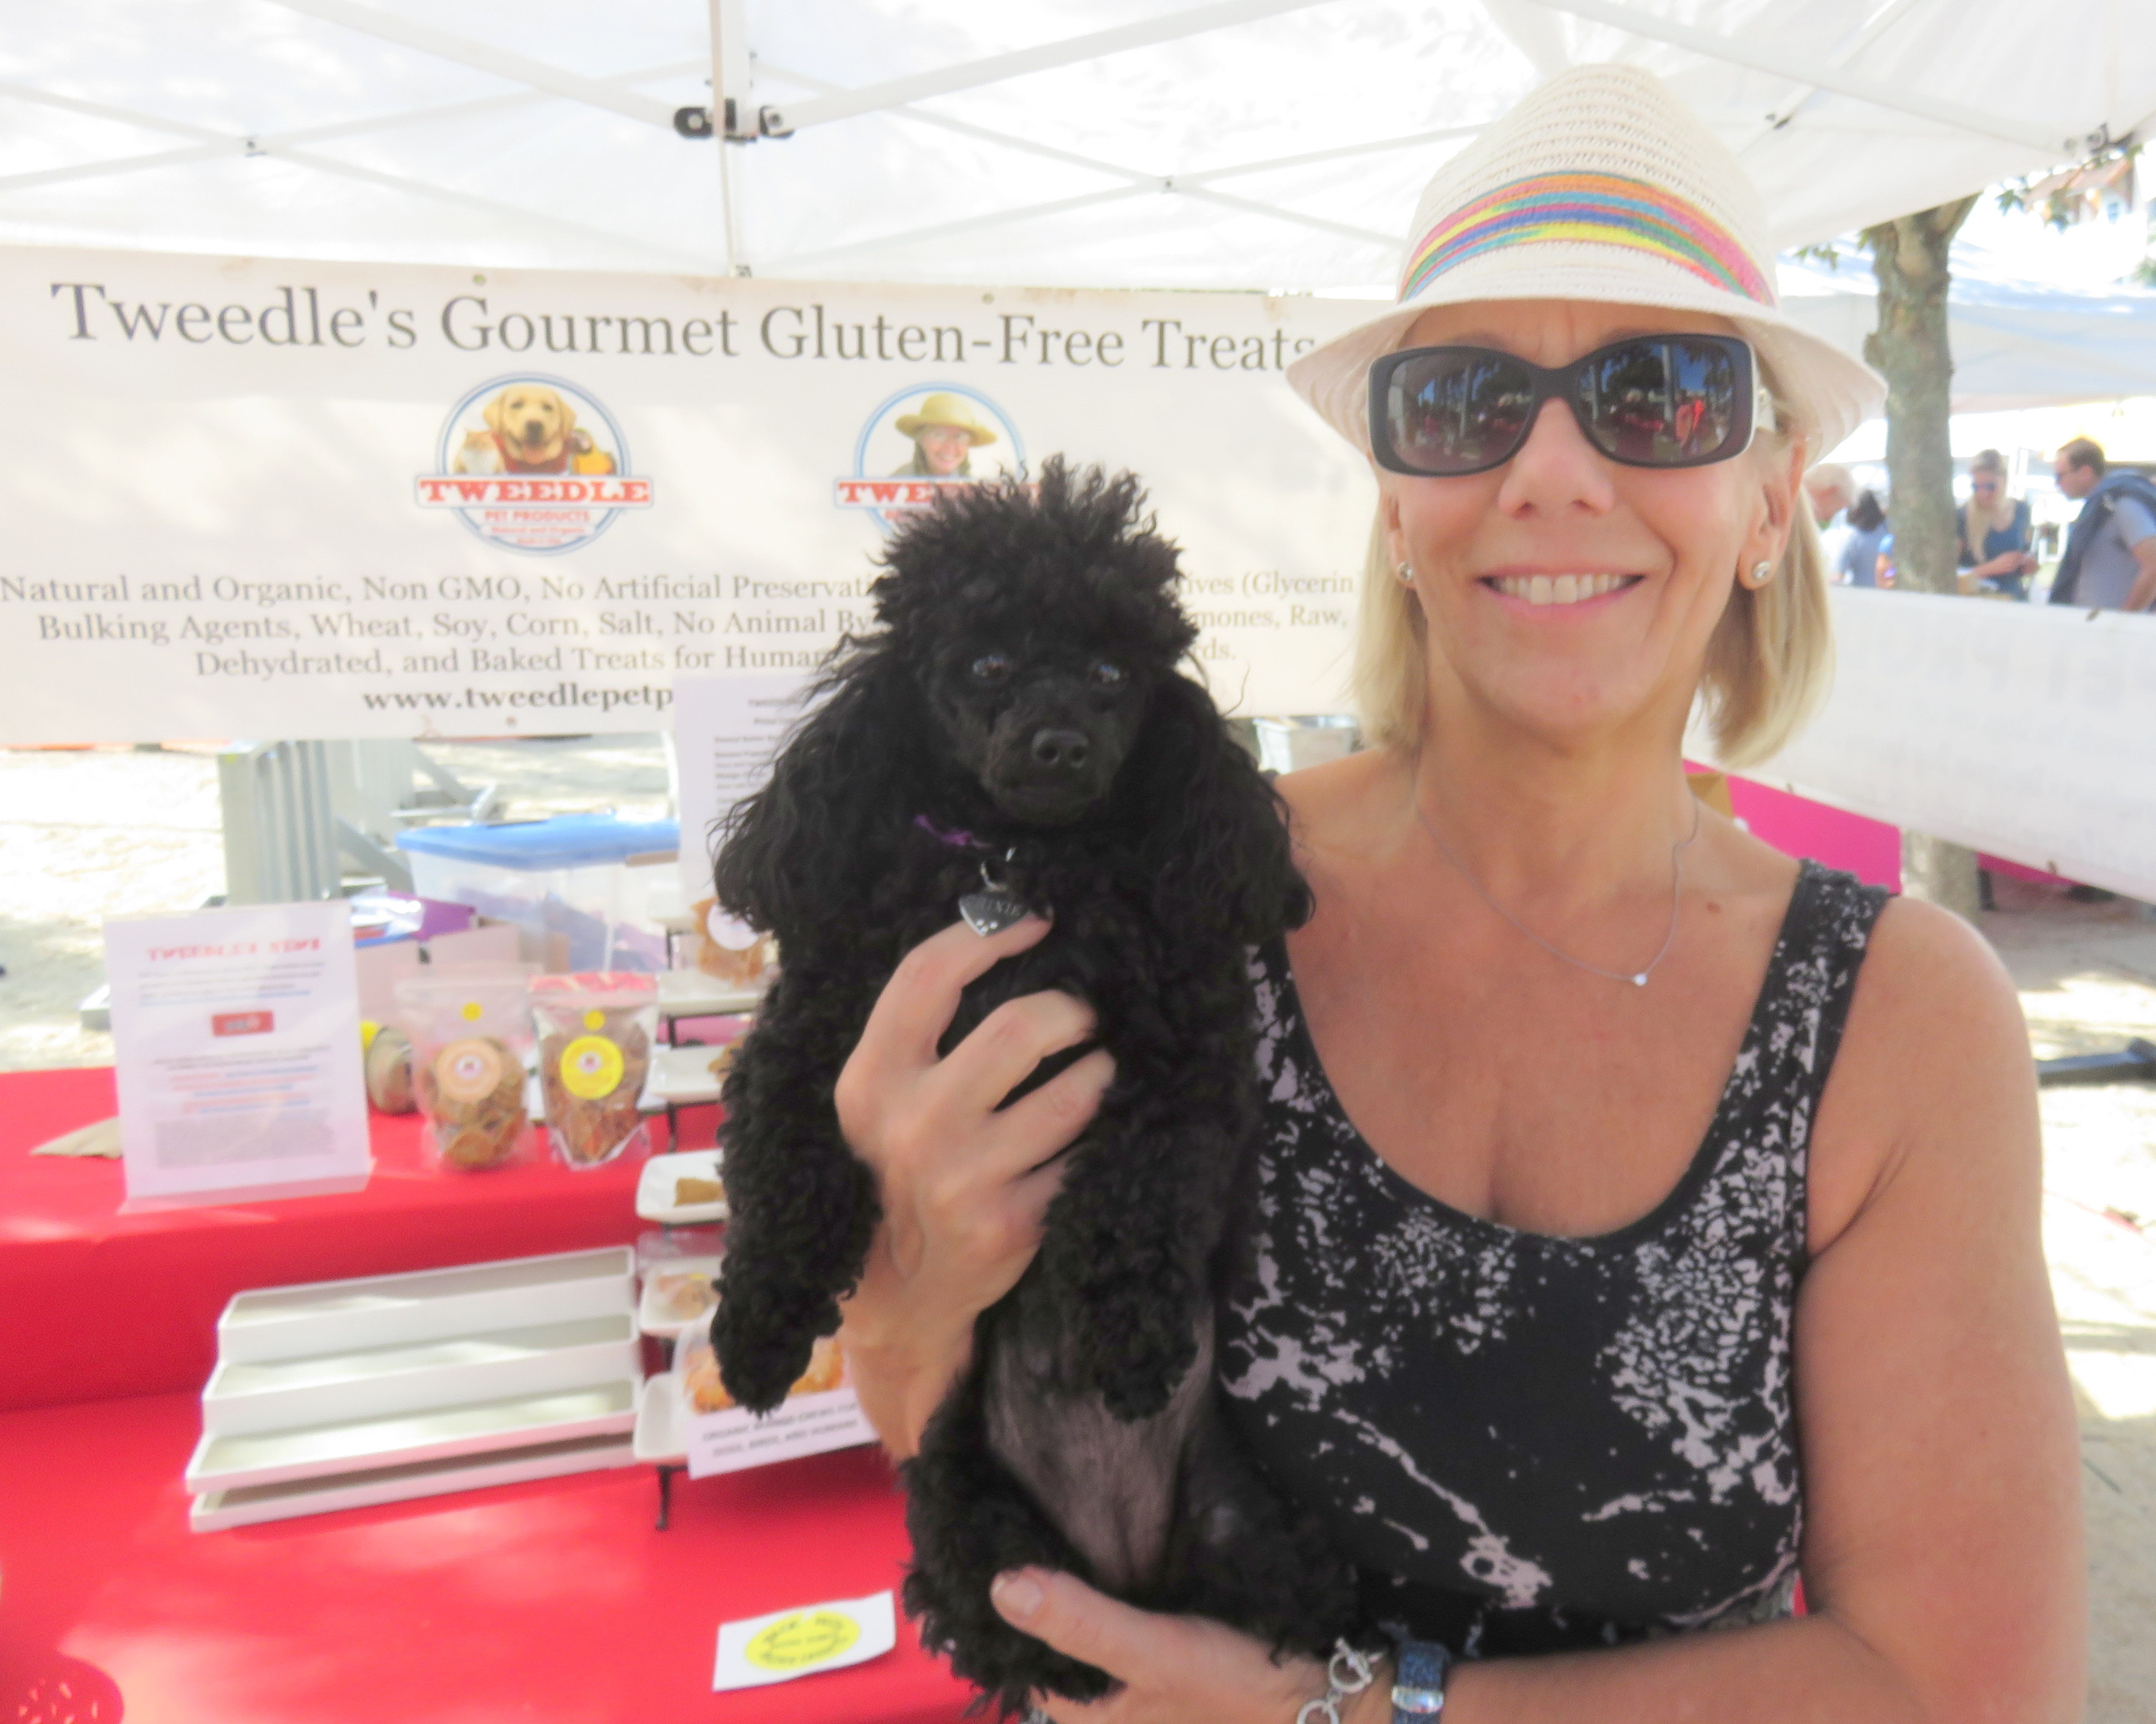 Trixie the poodle and mom Patti